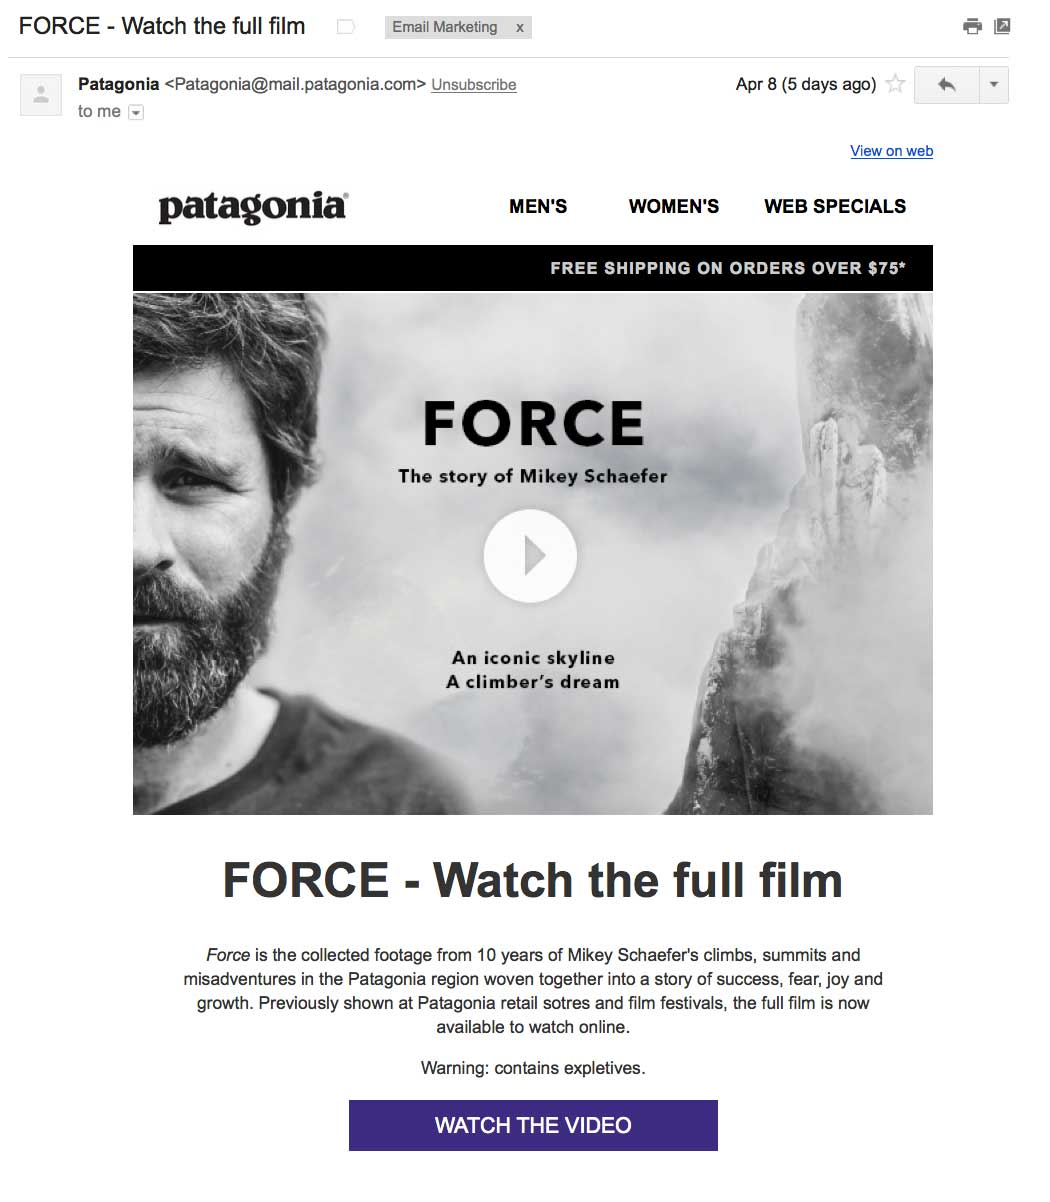 Patagonia uses a static image that looks like a video in their emails, then sends subscribers to a landing page where the video actually plays. This technique for video email marketing is widely used.